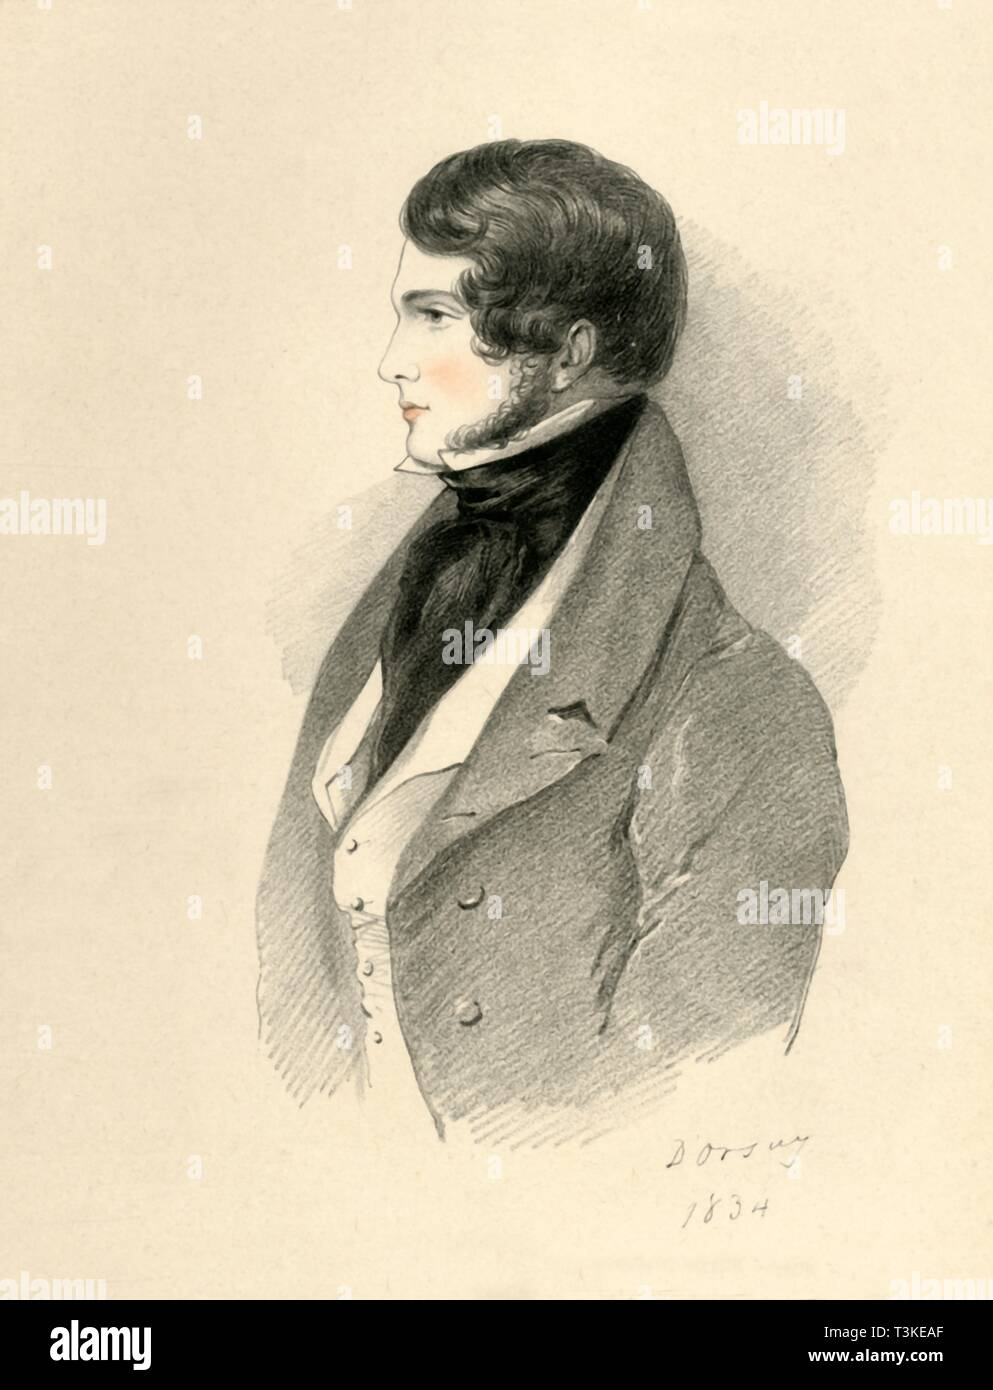 'William Little Gilmour Esquire', 1834. Creator: Alfred d'Orsay. - Stock Image